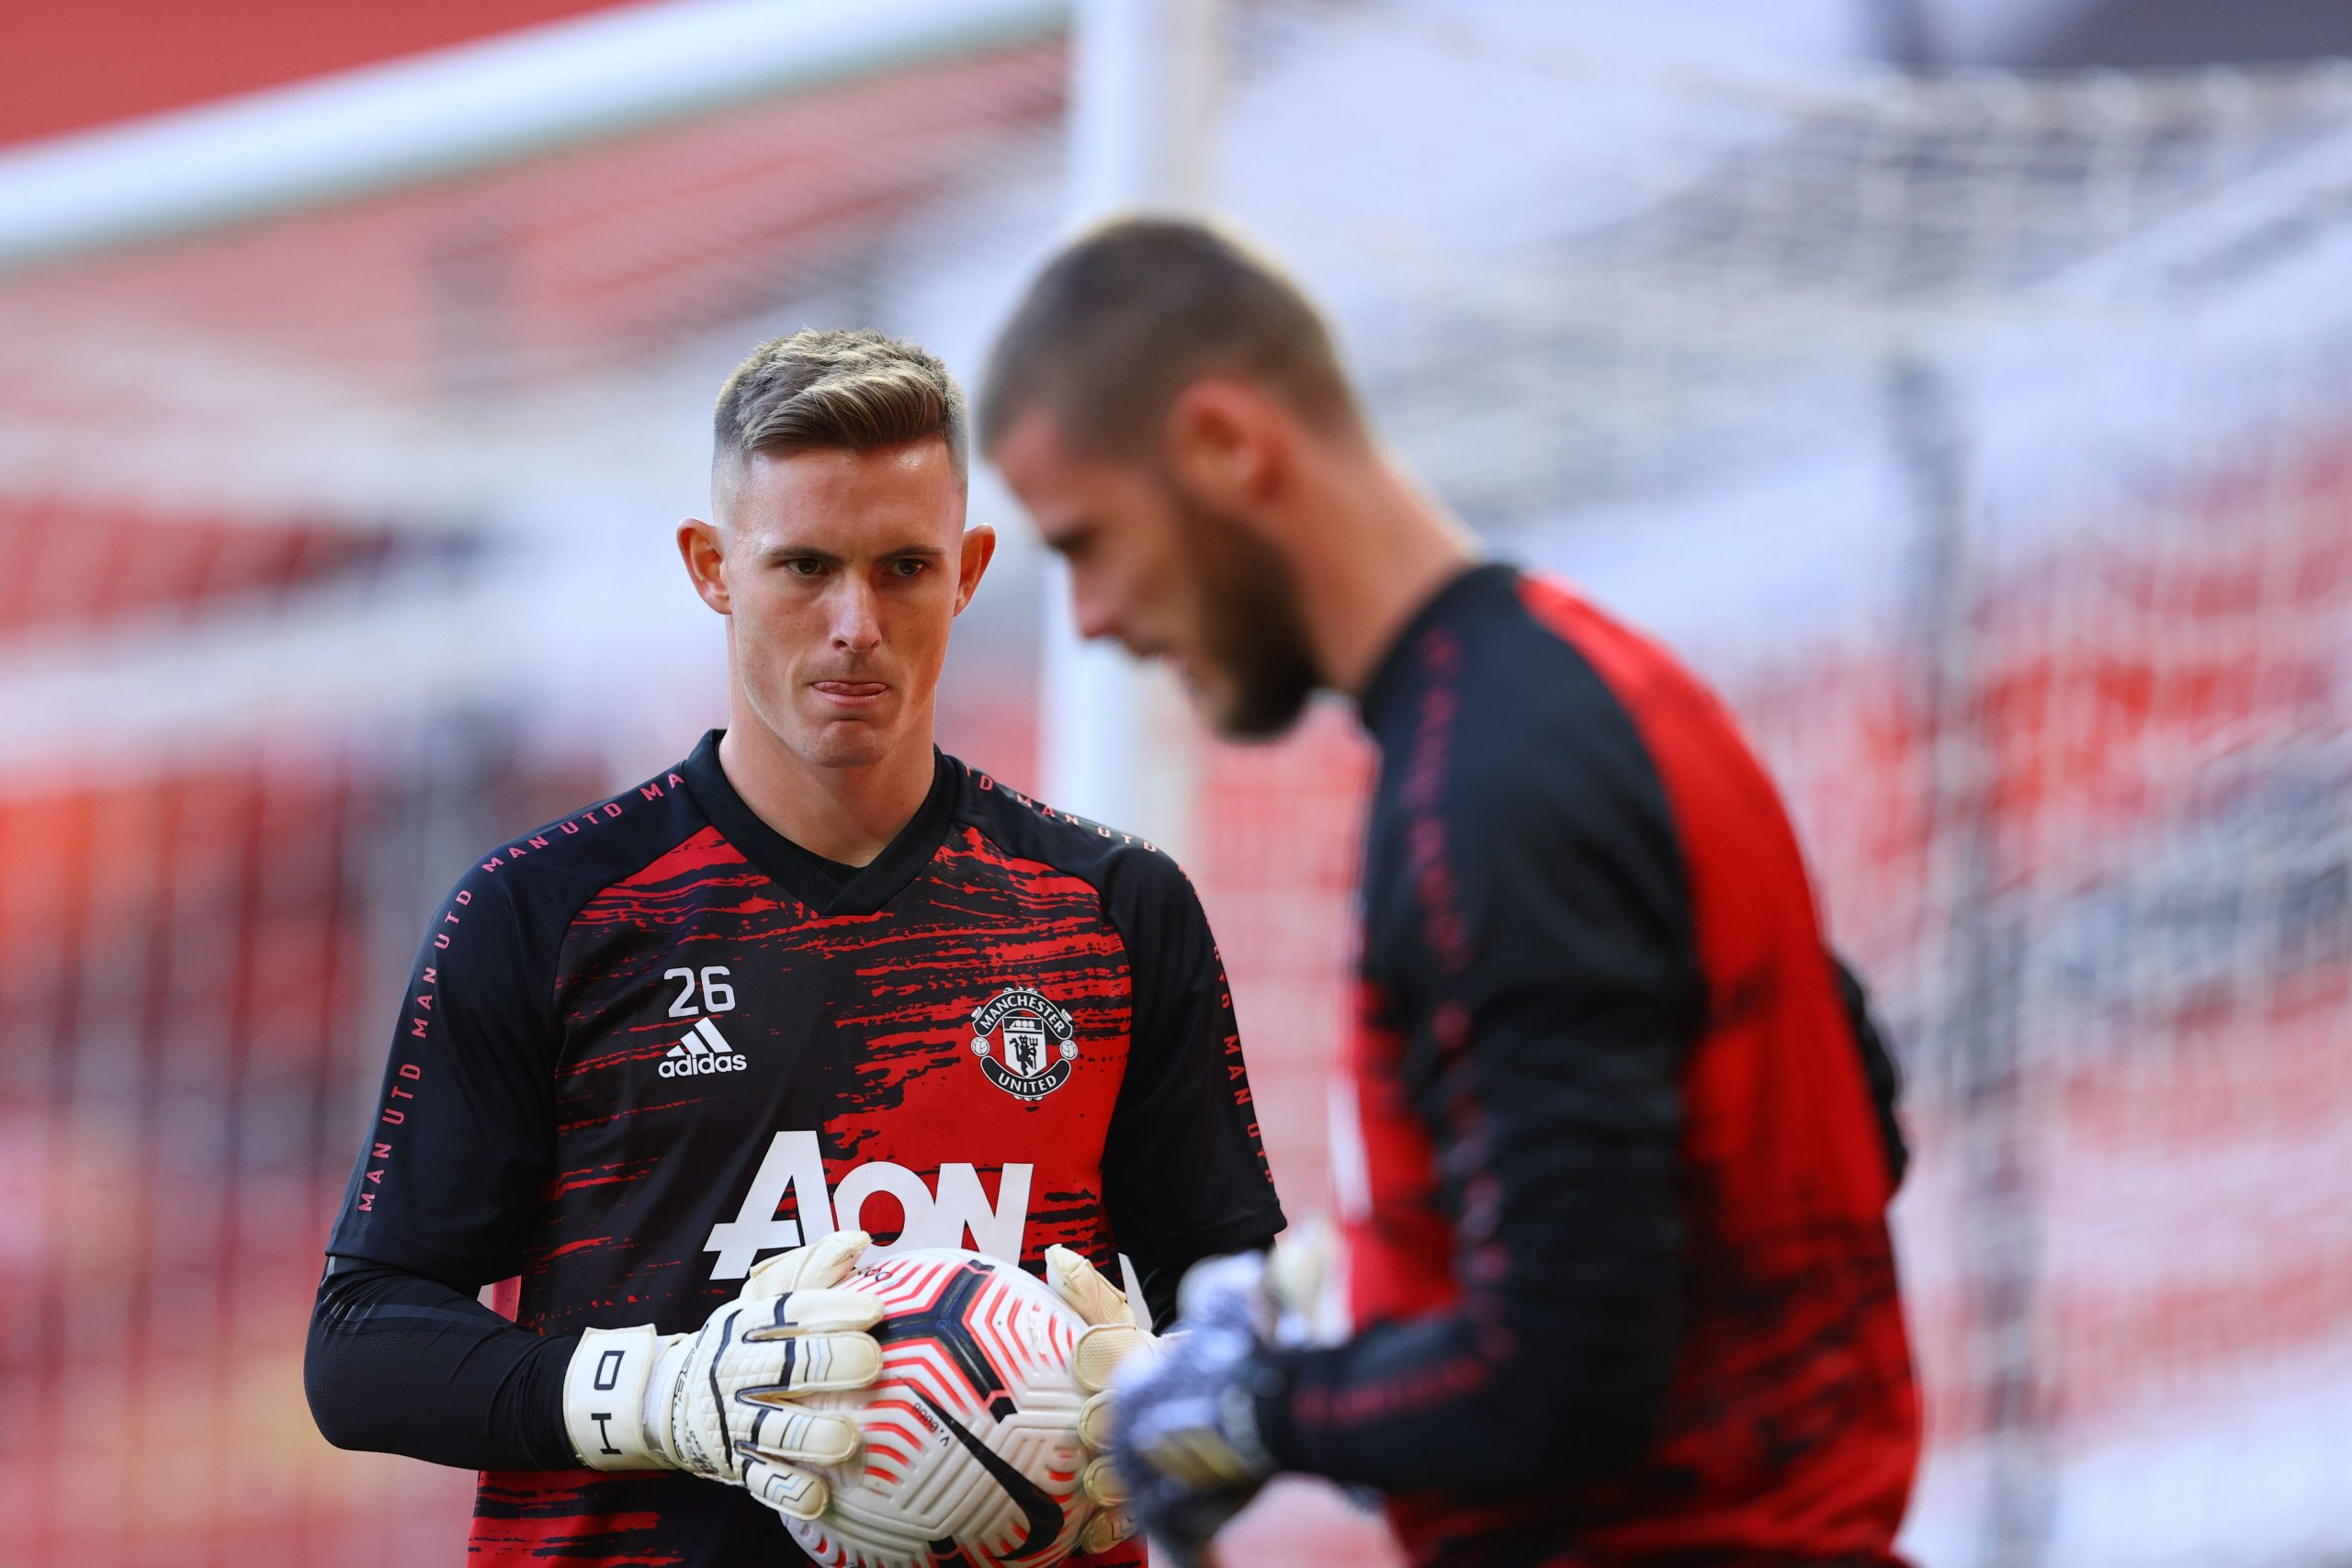 Michael Owen has suggested that the cards have been dealt perfectly for Ole Gunnar Solskjaer to bench David de Gea in favor of Dean Henderson. (GETTY Images)